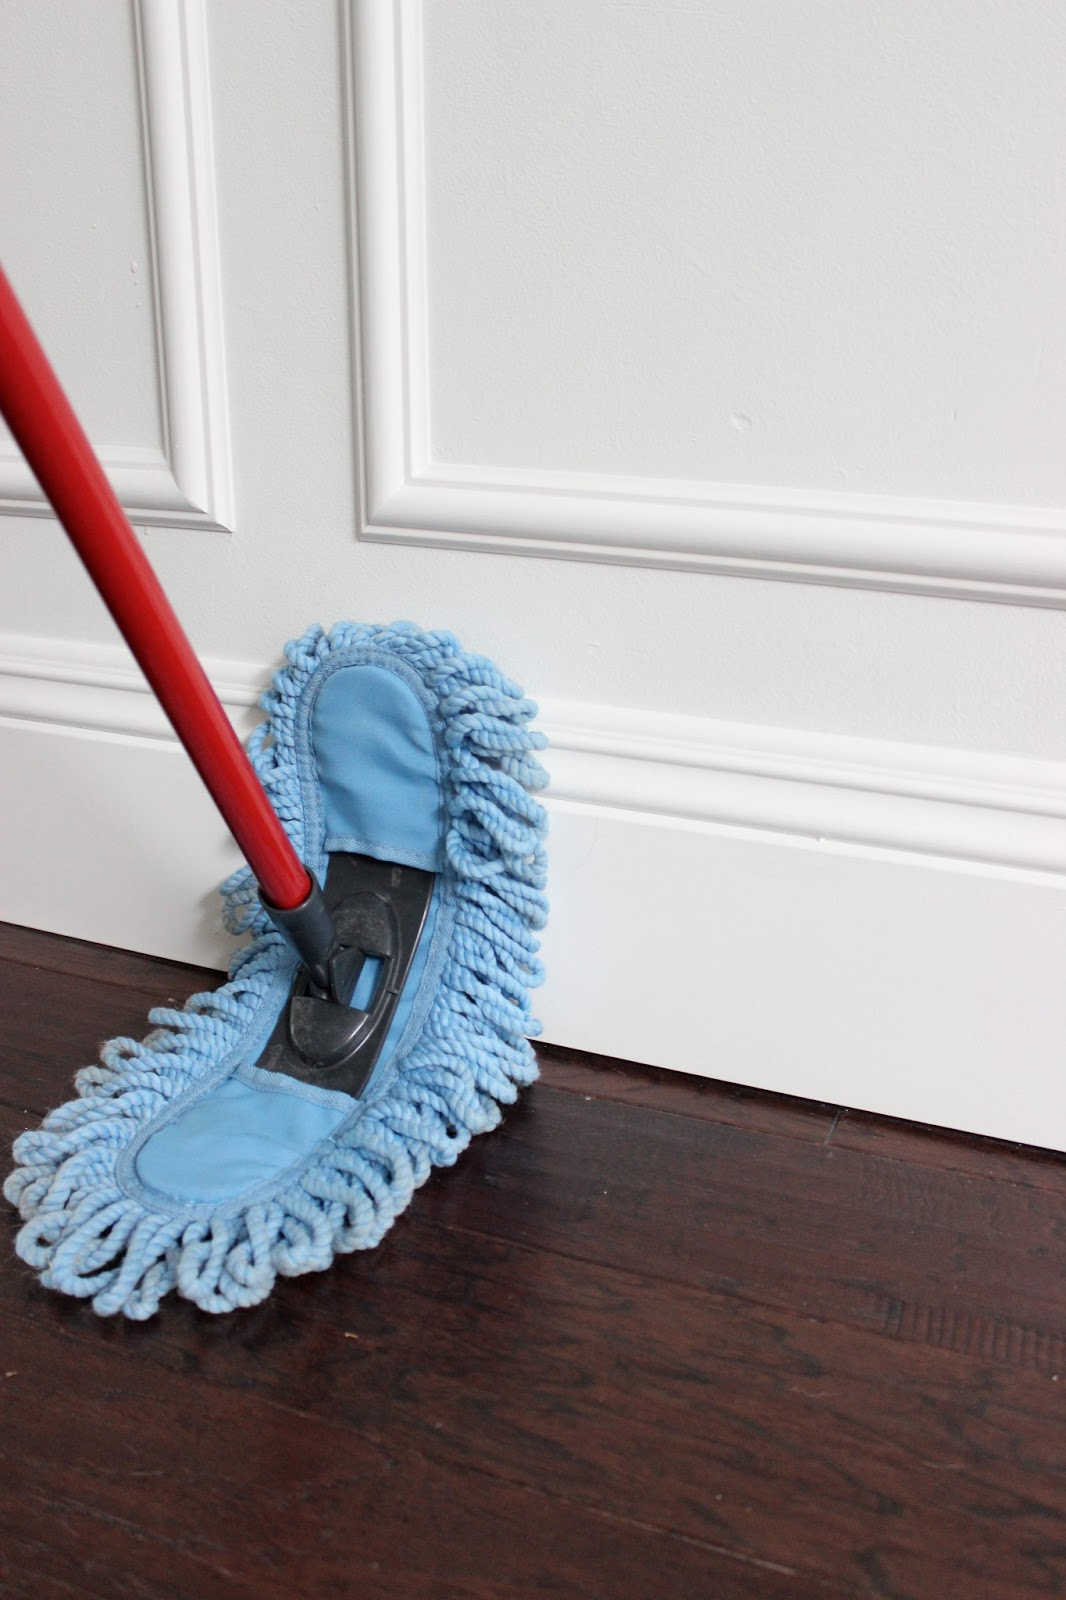 Laminate Floor Vacuum best vacuum or steam mop for tile floors homeflooringproscom We Get My Floors Is Designed To Tile Floors Stained And Marketing